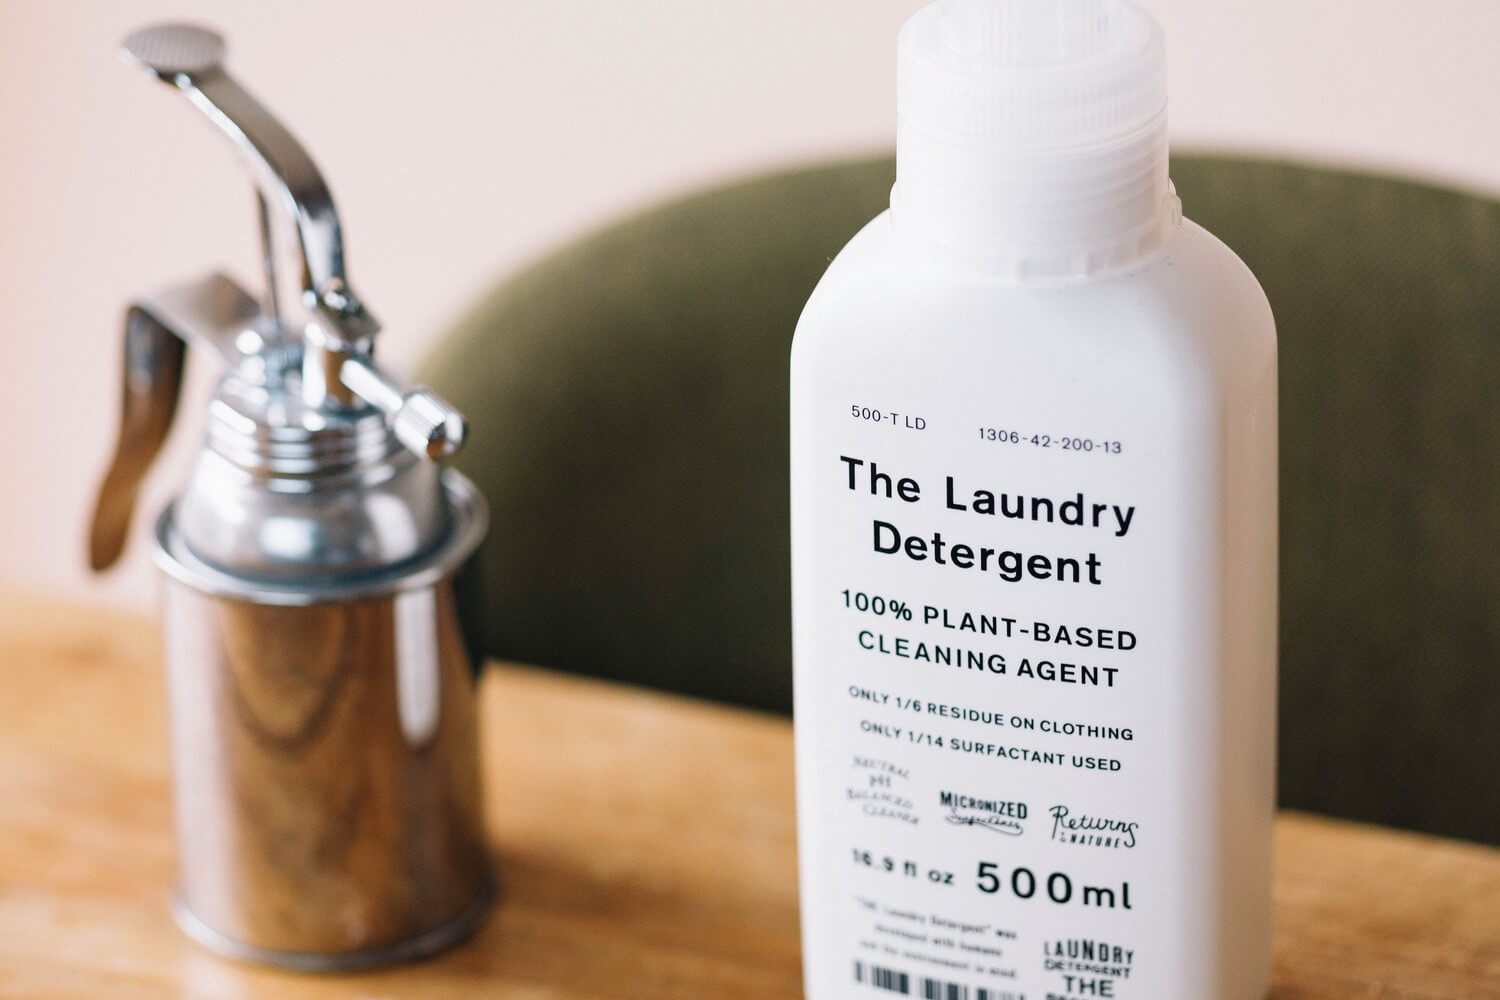 The Laundry Detergent 0001